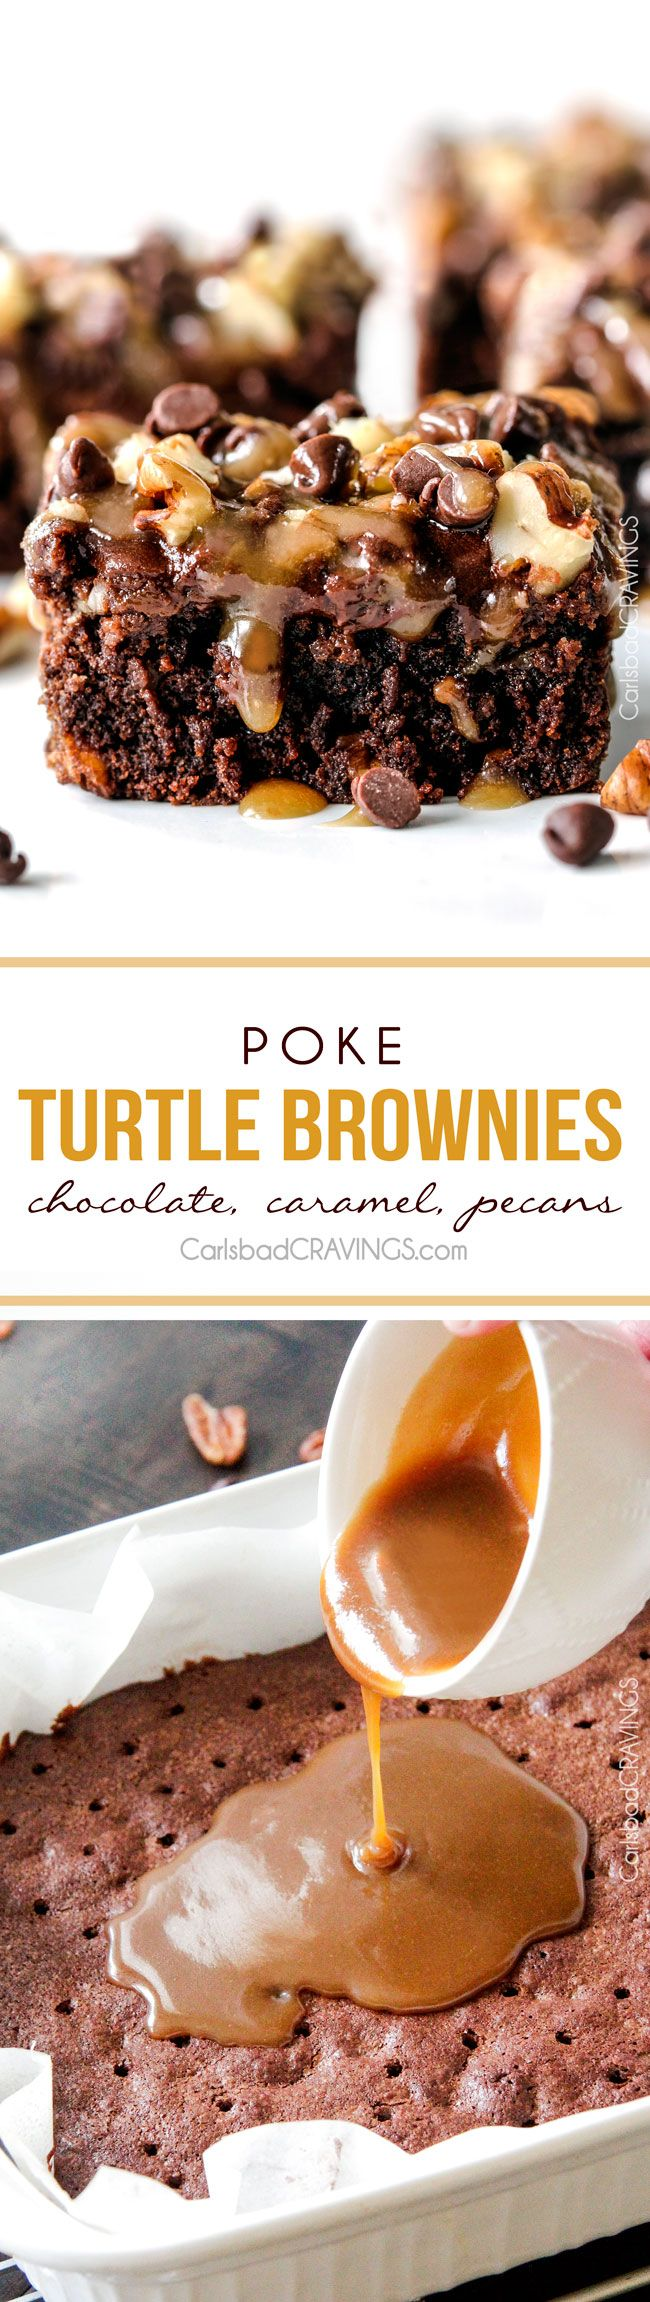 Crazy moist Poke Turtle Brownies seeping with pockets of caramel, infused with pecans and chocolate chips, smothered in the BEST chocolate frosting and topped with more caramel. the best brownies EVER! via @carlsbadcraving